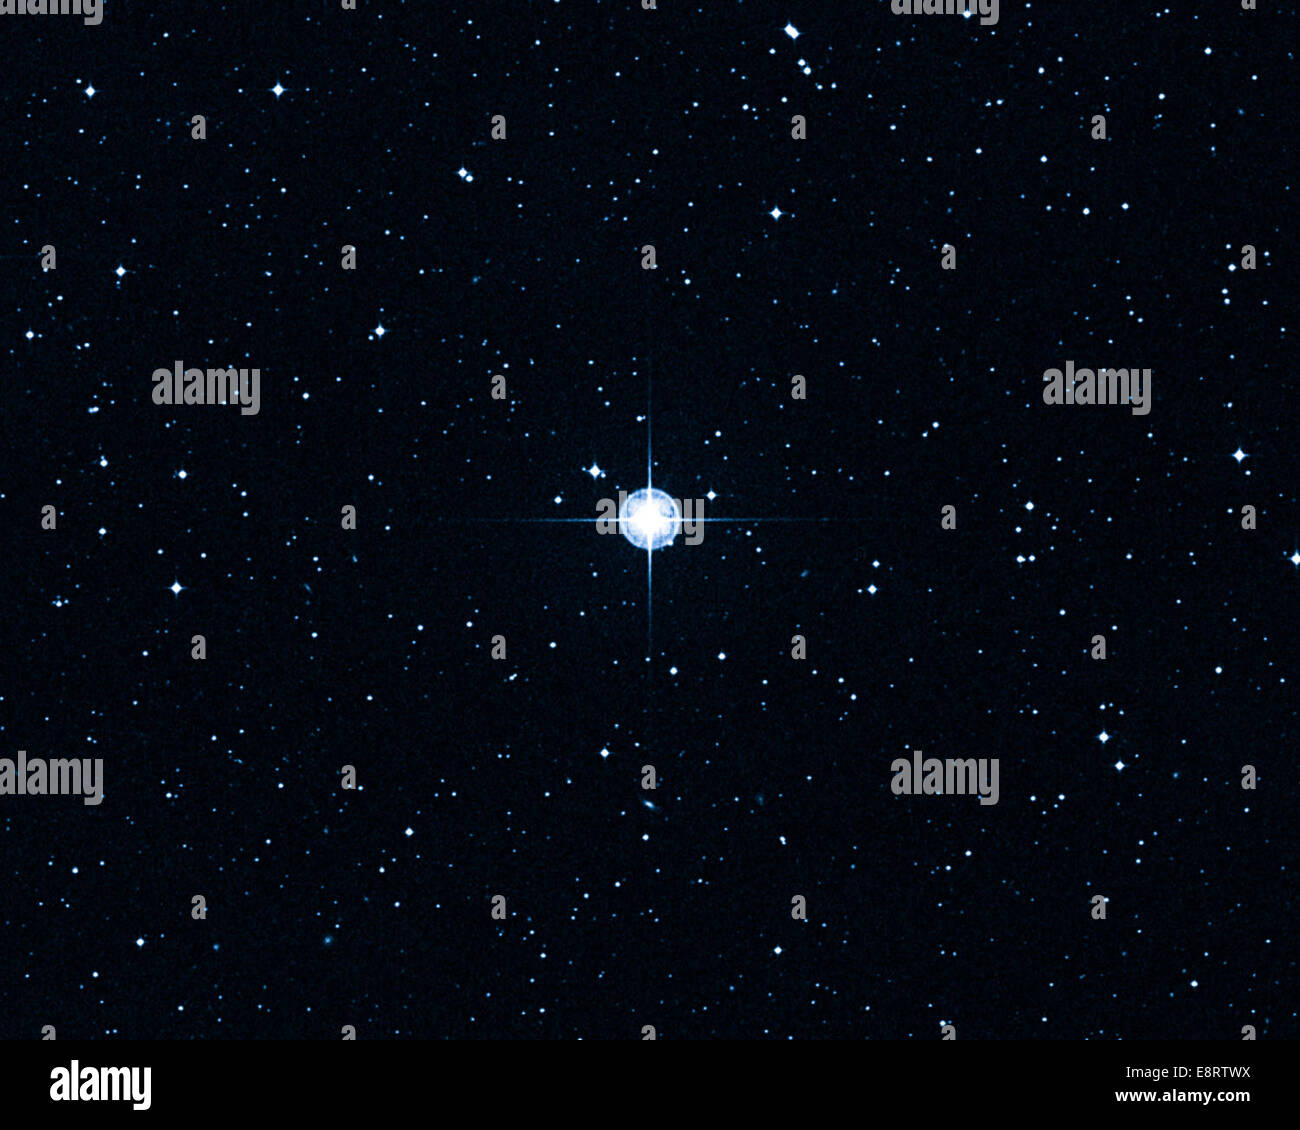 MARCH 7, 2013: You can't be older than your parents. But there is a nearby star that at first glance looks like - Stock Image